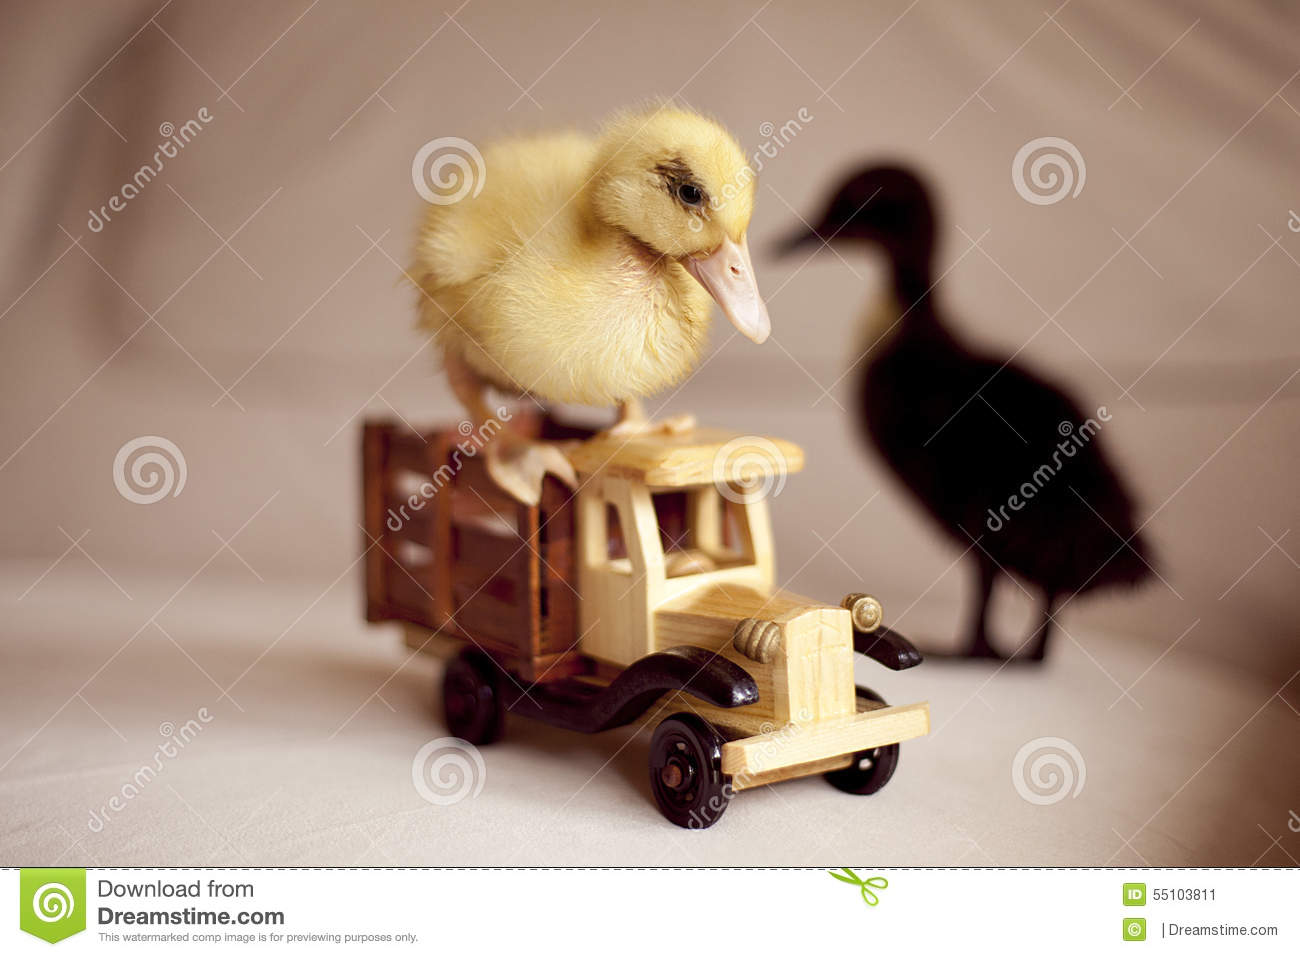 Two Small Ducks And Wooden Toy Car Stock Image - Image of kids ...